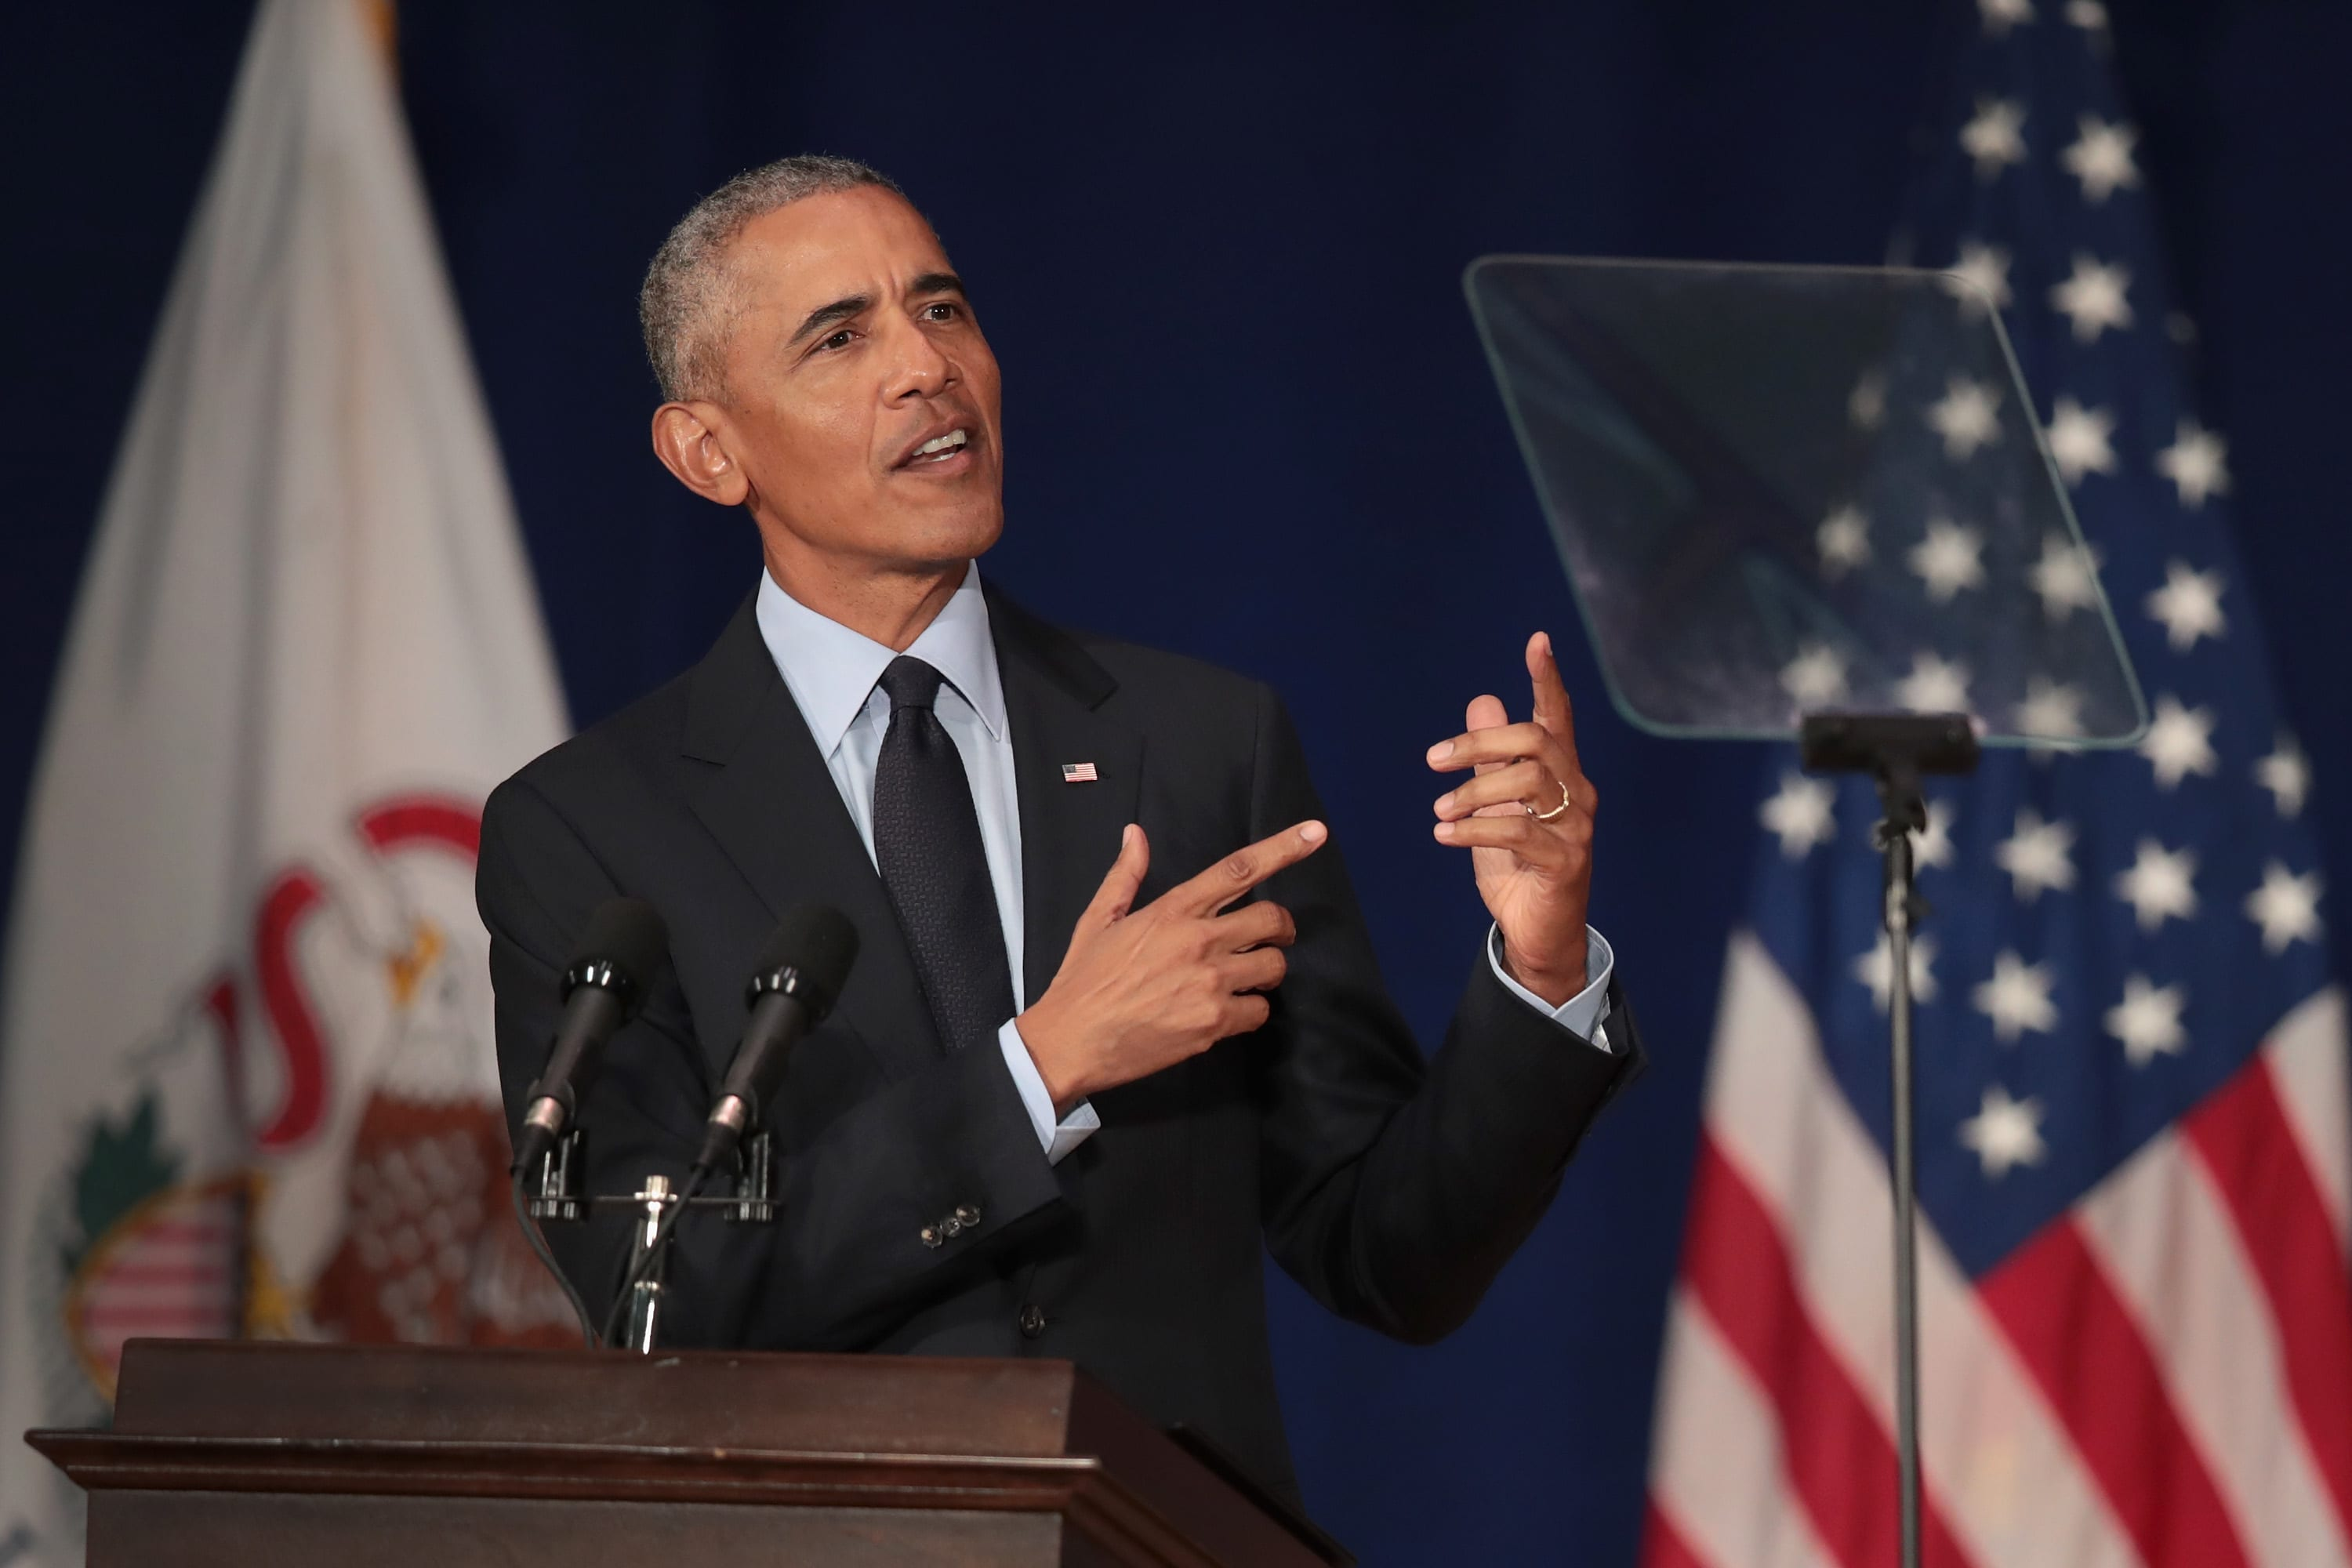 Obama warns Democrats against going too far left: 'We have to be rooted in reality'